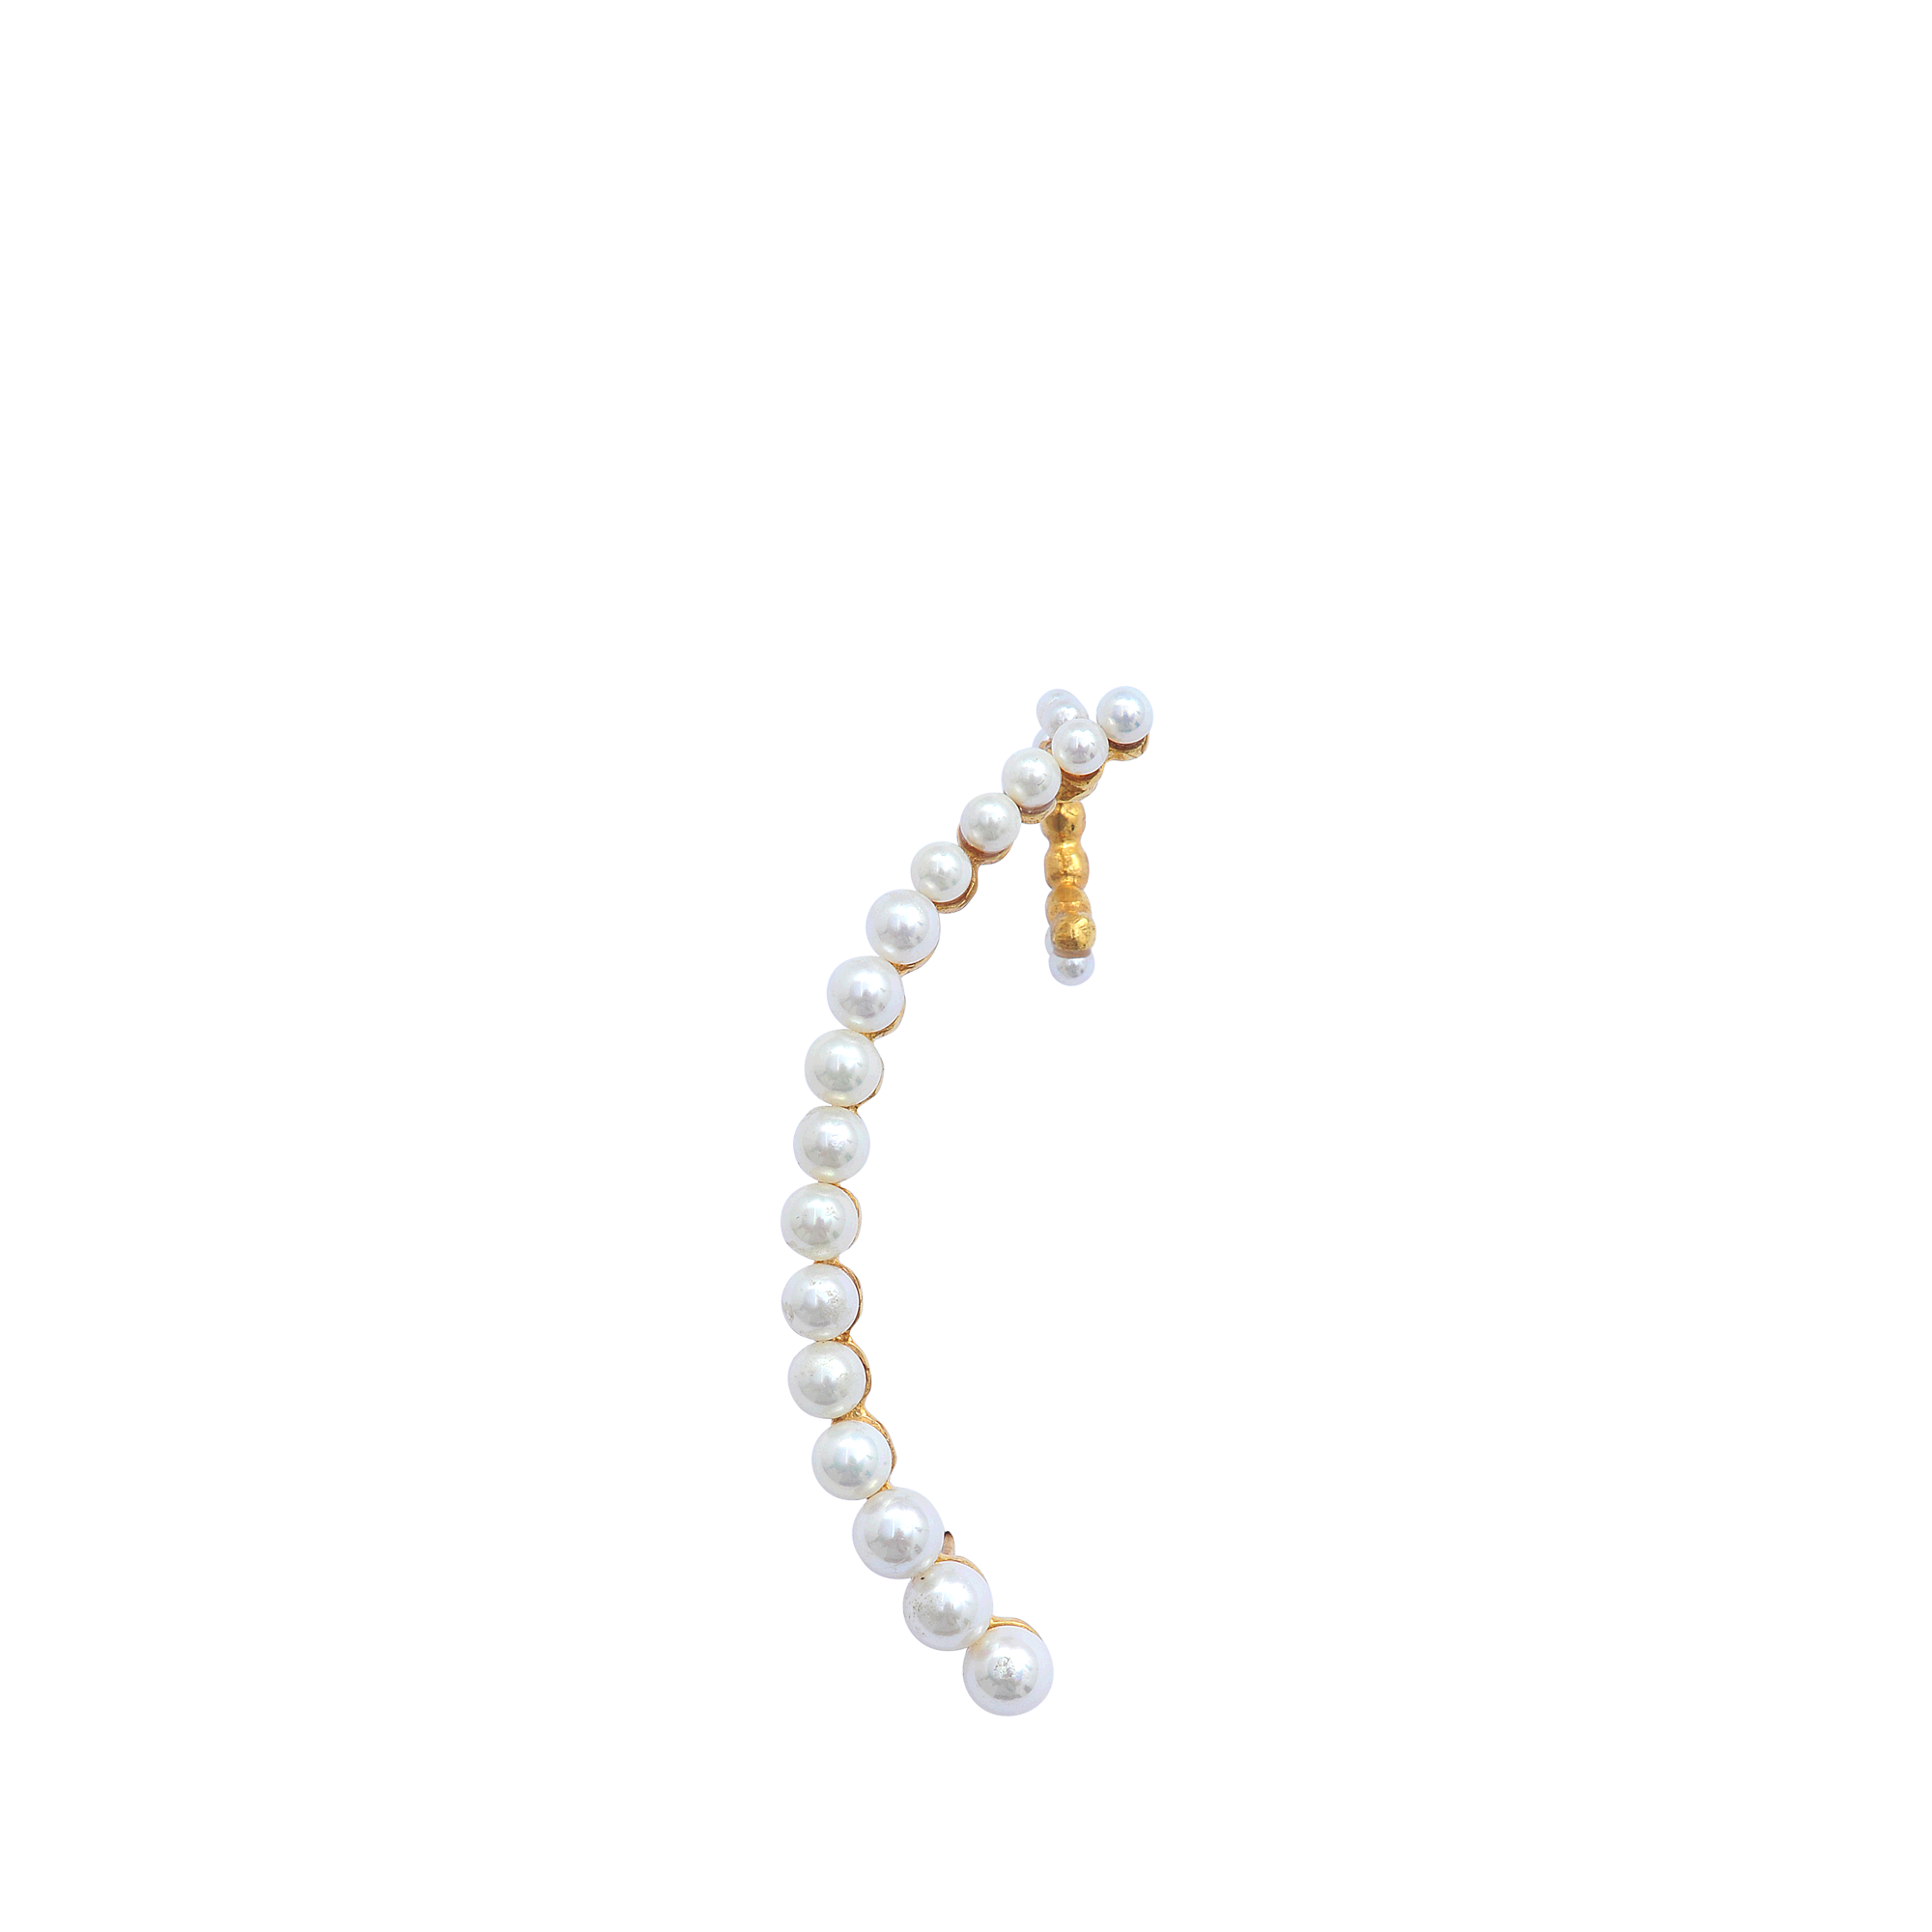 zara products at asymmetric earrings faux the pearls brands love with